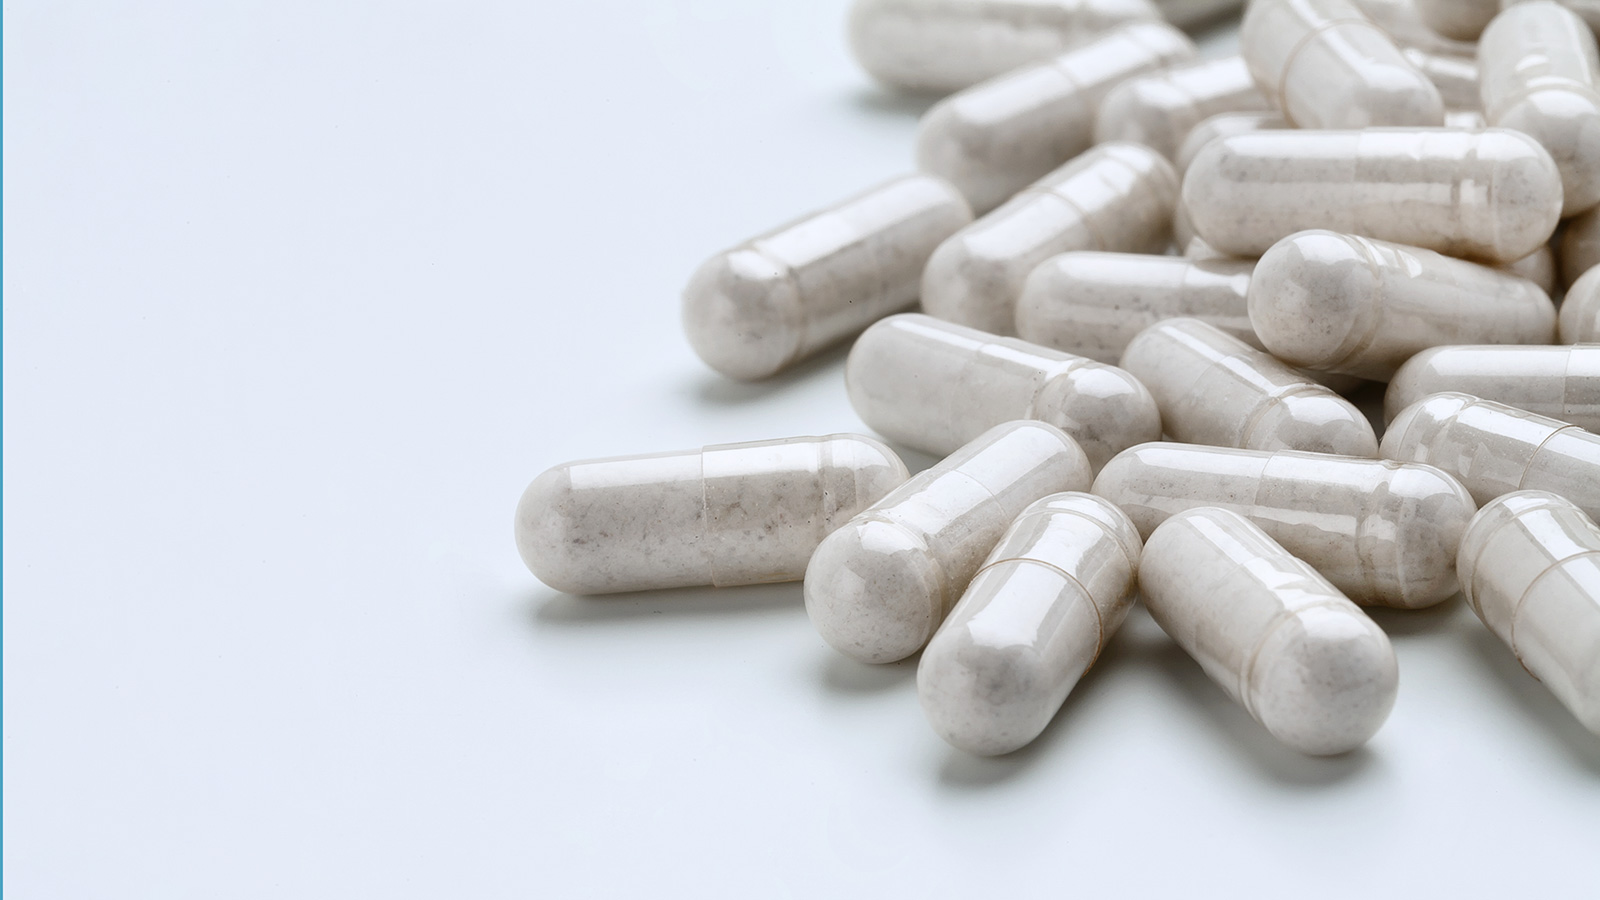 Probiotics, a possible solution to COVID-19 transmission?